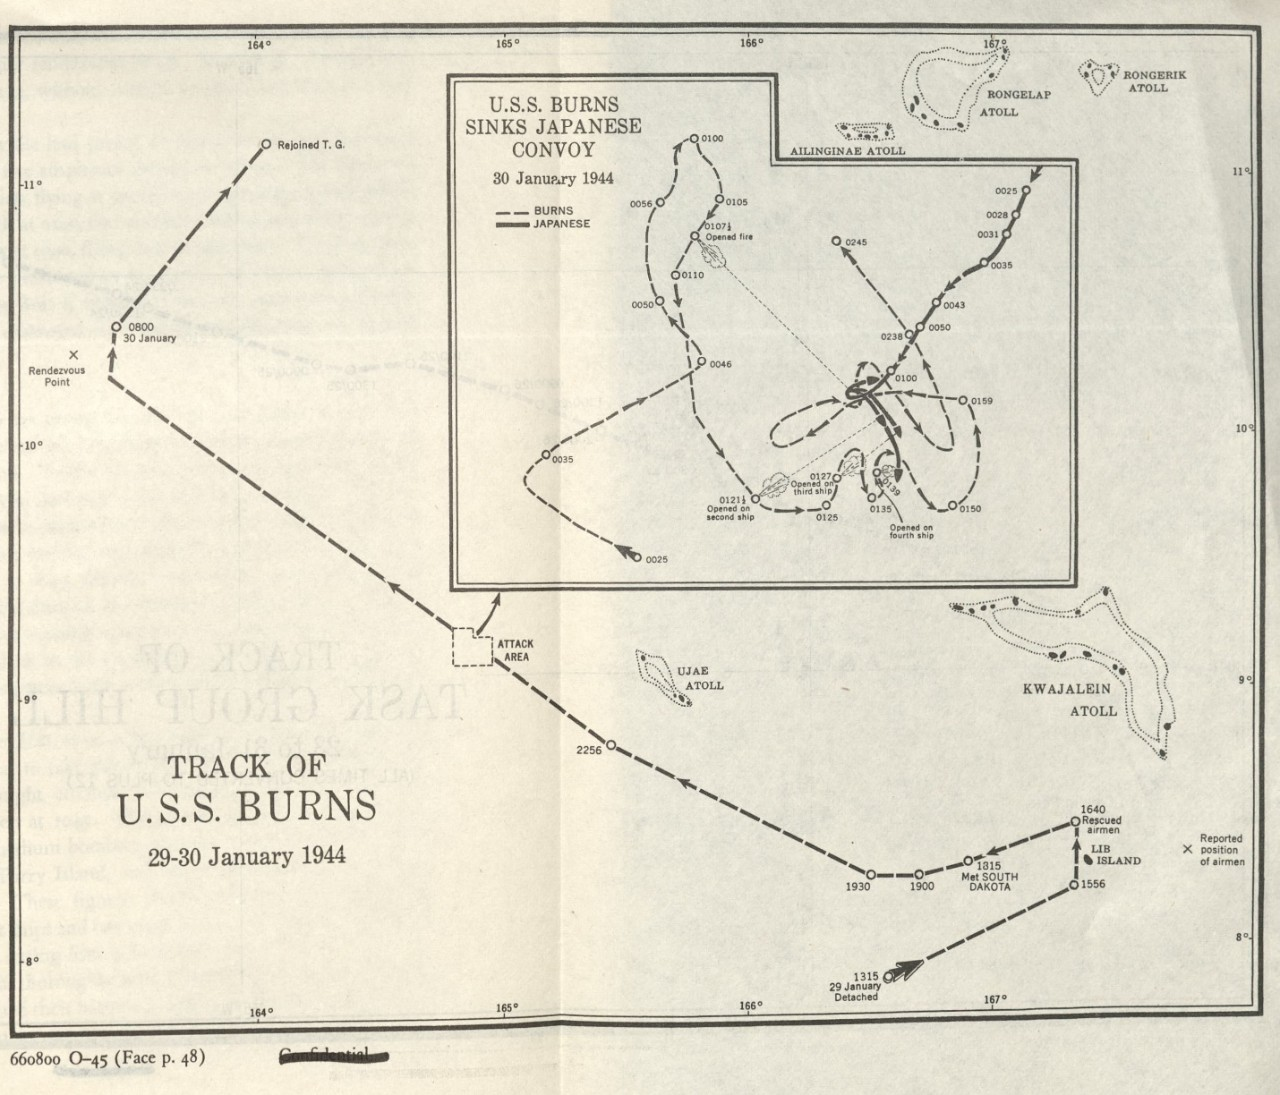 Track of U.S.S. Burns 29-30 January 1944